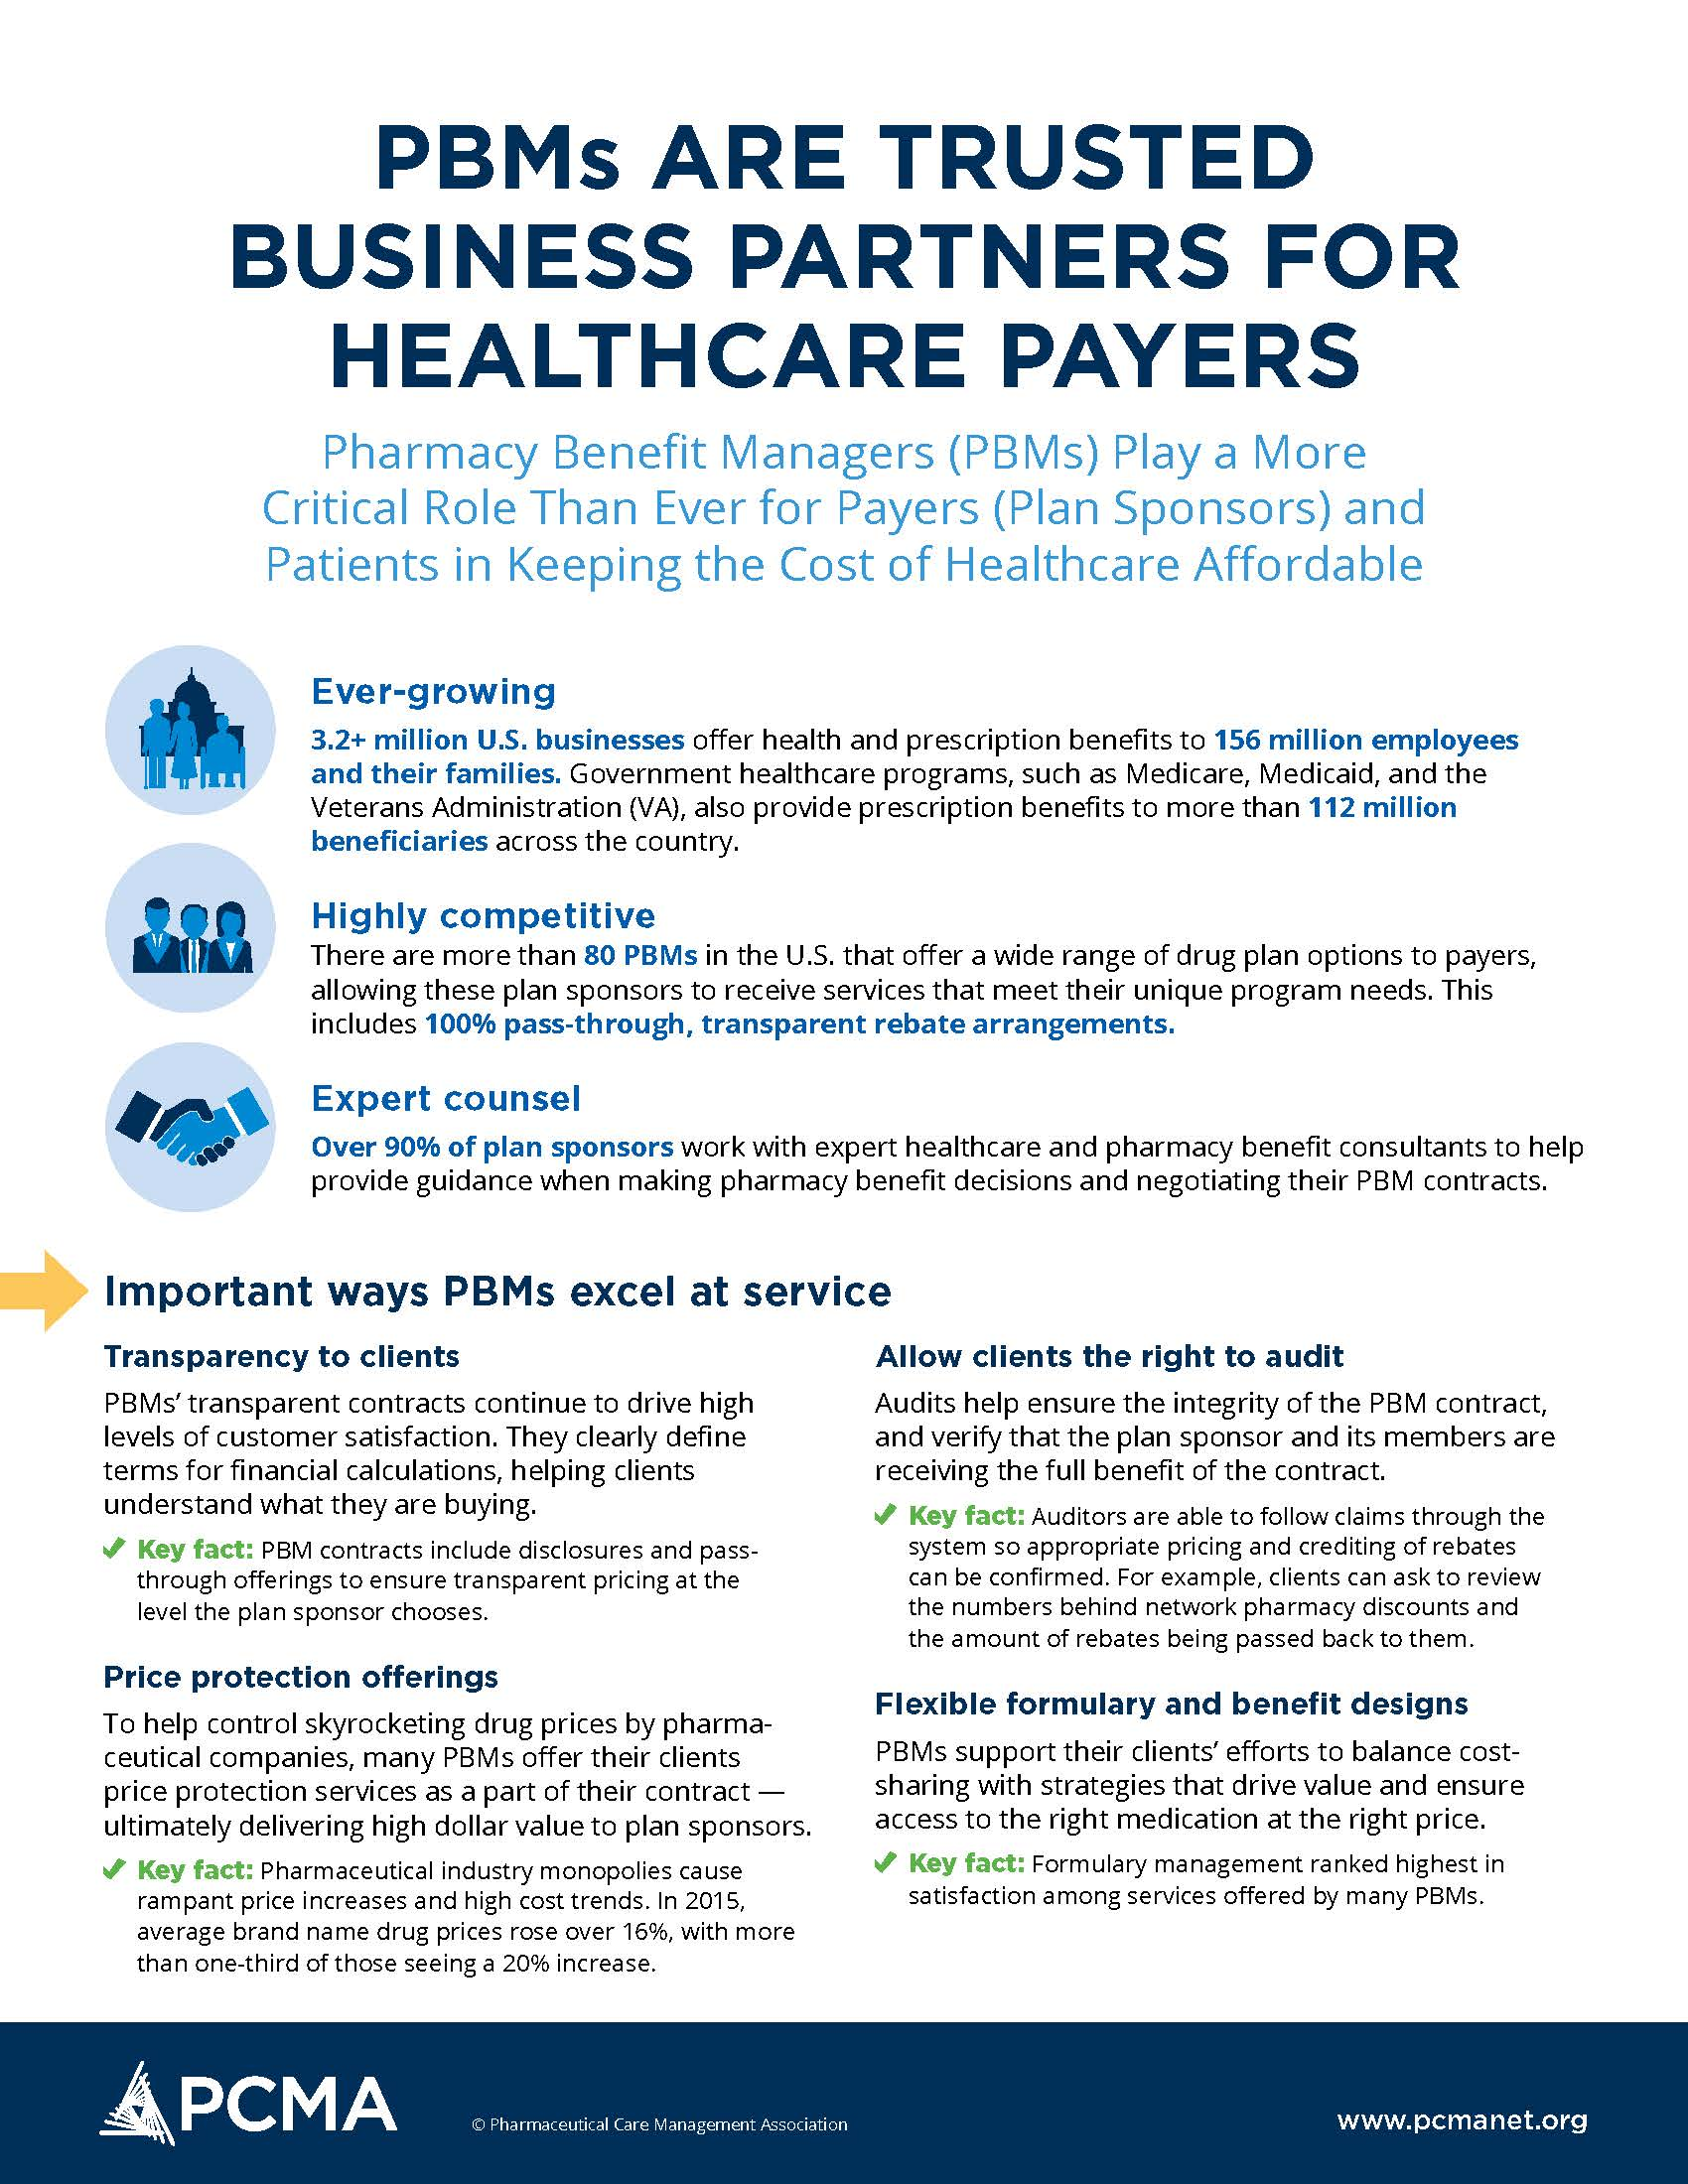 This is a one-page infographic that explains that PBMs are trusted business partners for healthcare partners.